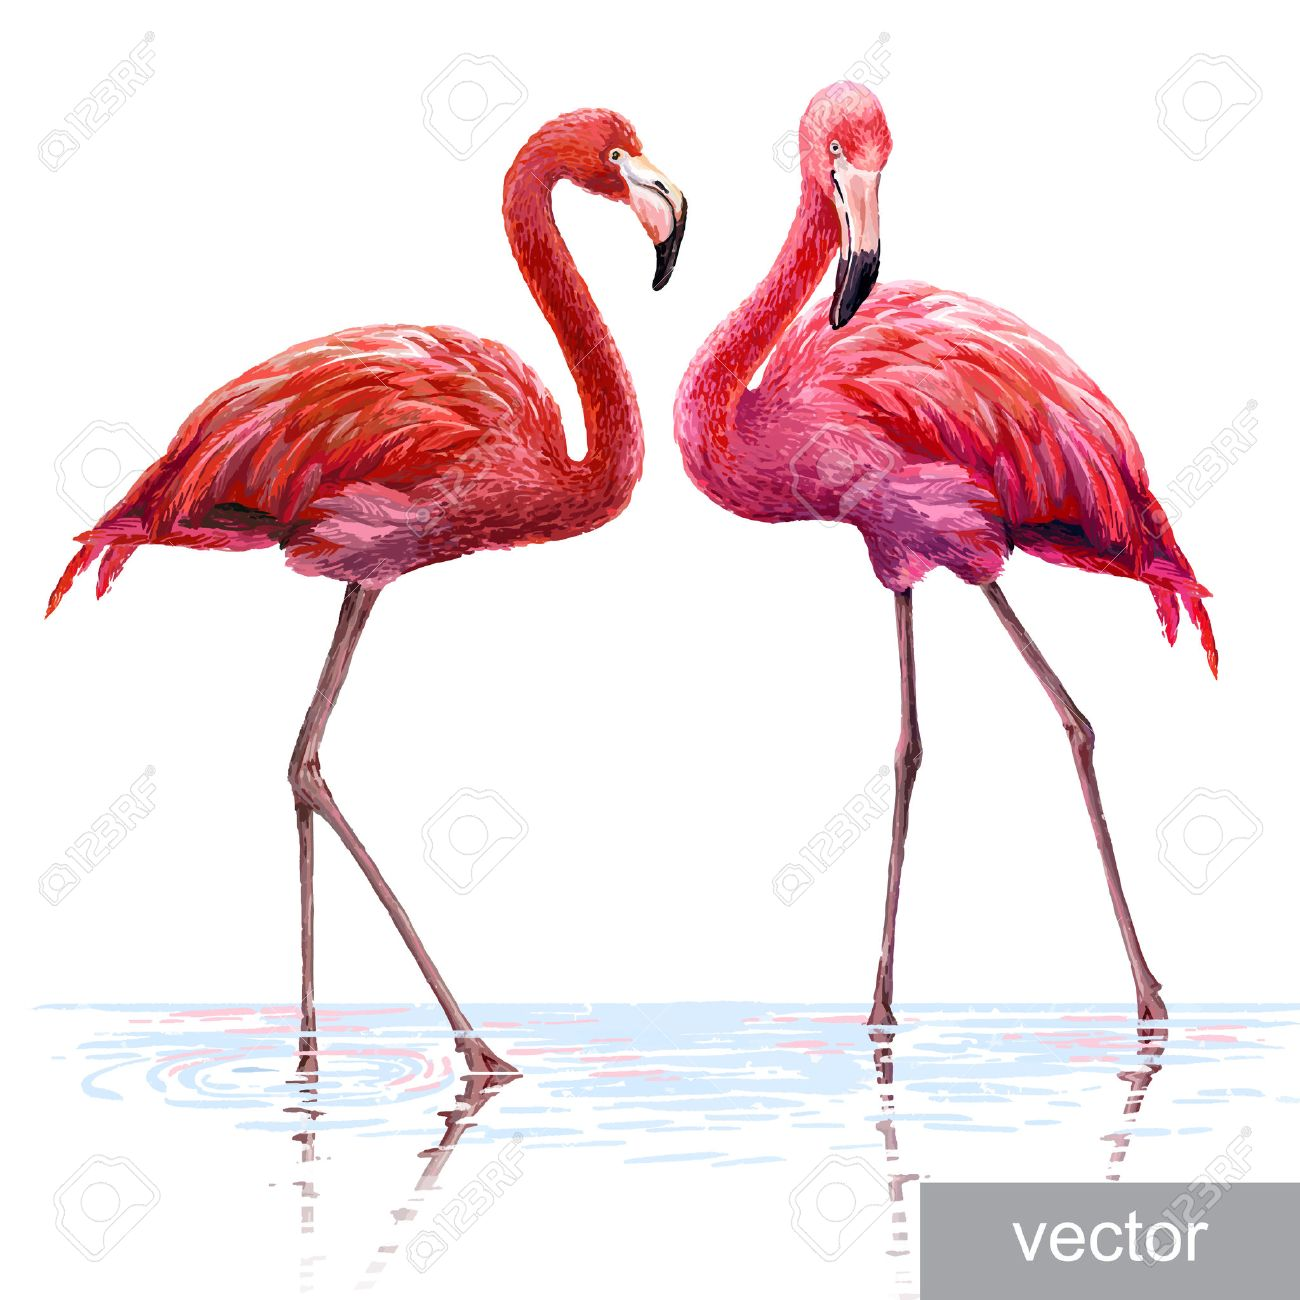 Flamingo Stock Photos. Royalty Free Flamingo Images